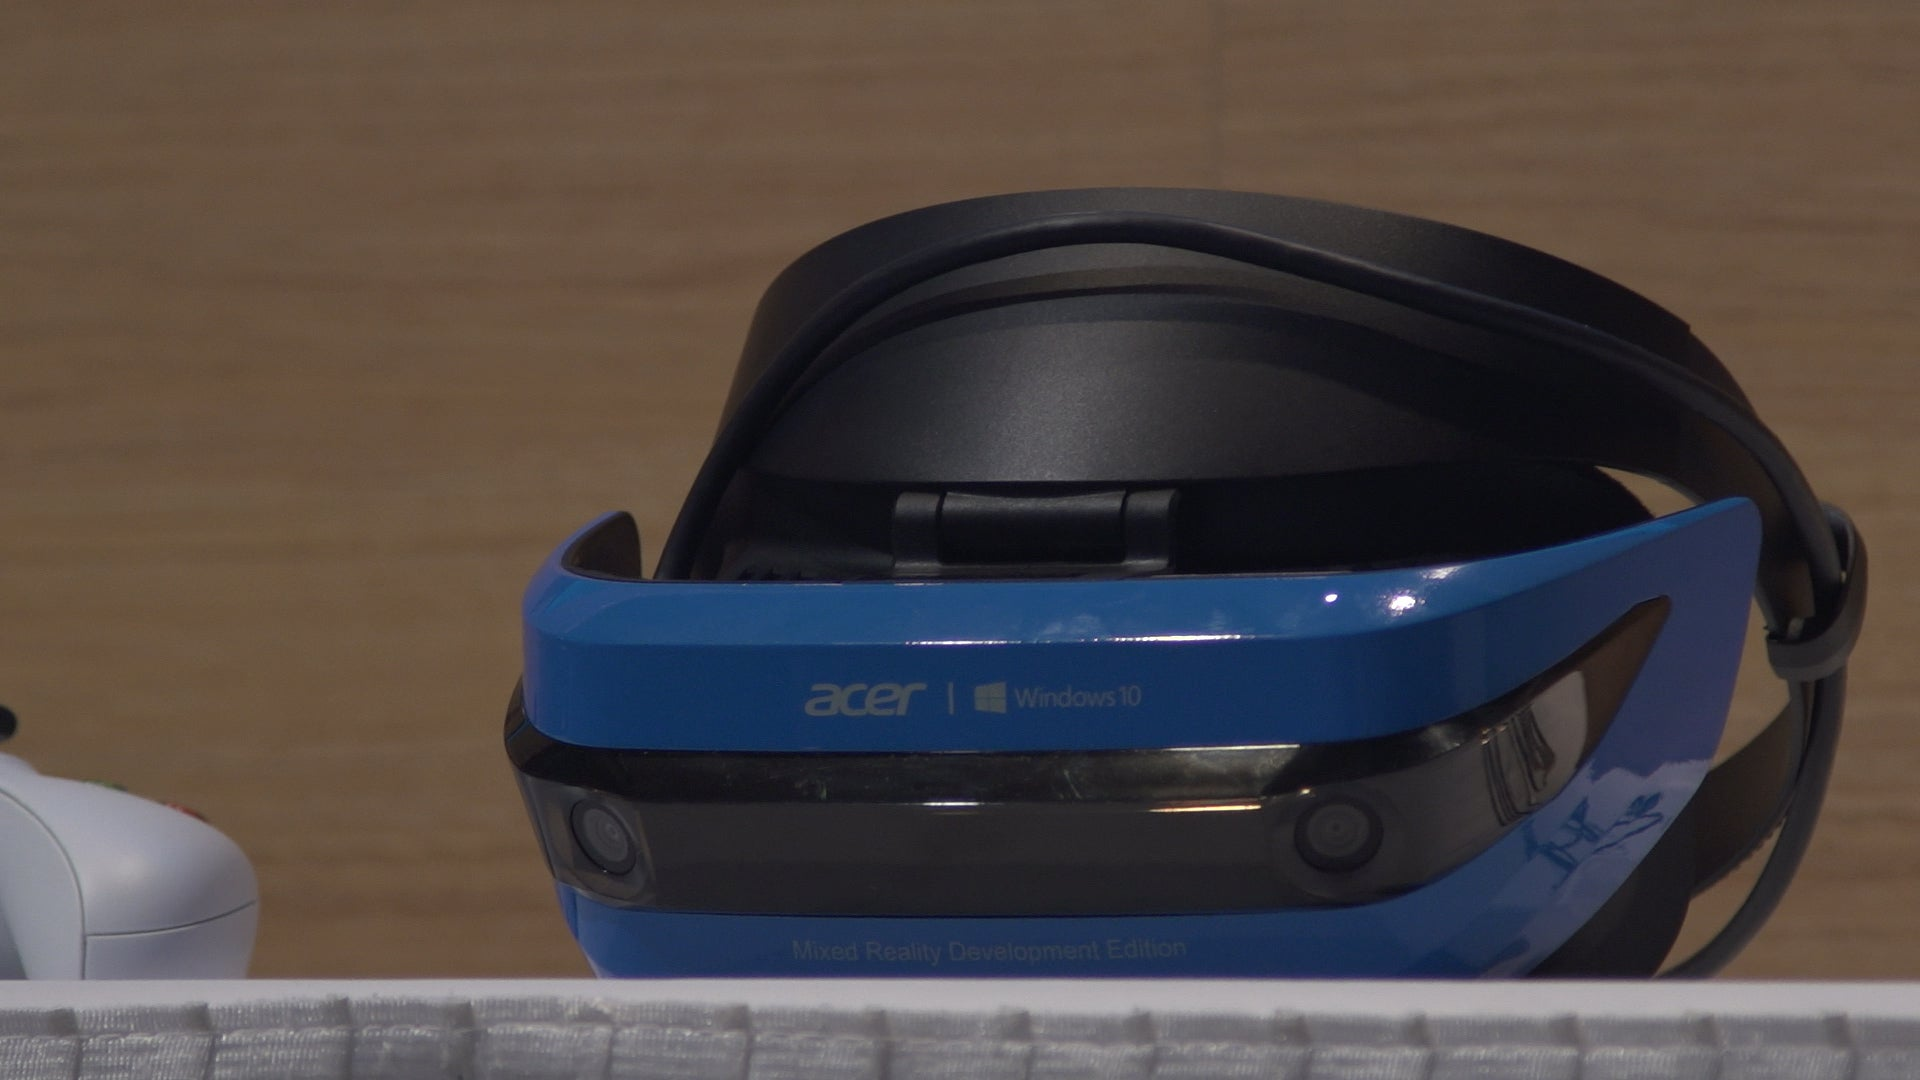 Acer's Mixed Reality Headset for Windows 10